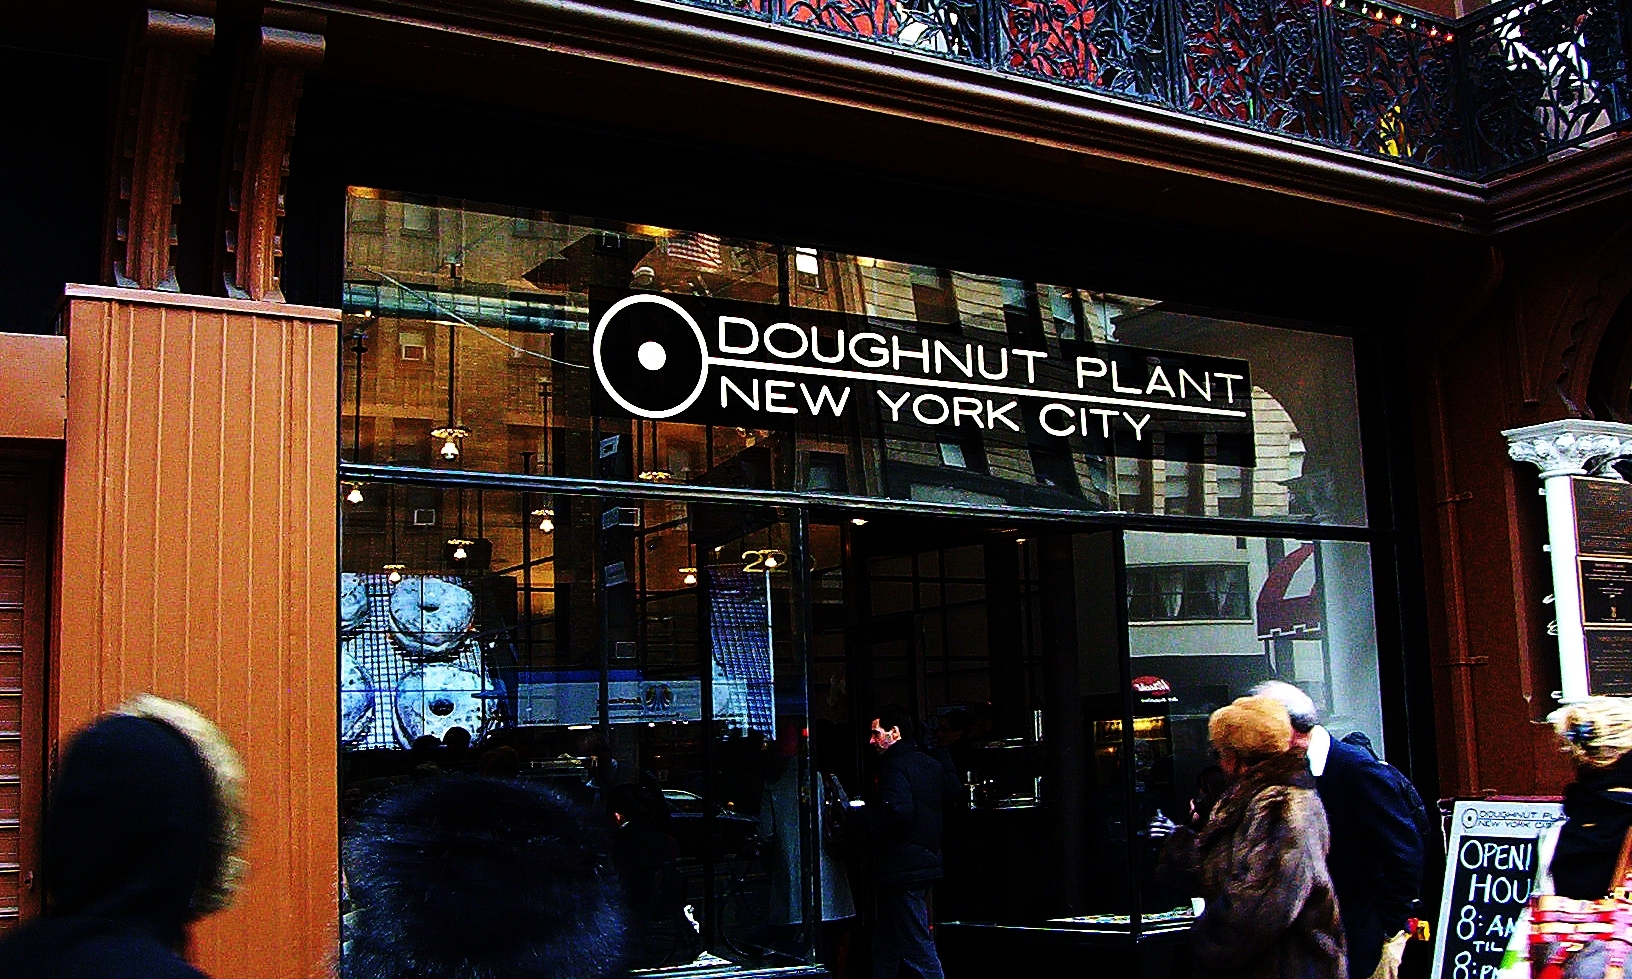 Background - Since 1994, Doughnut Plant has been serving high quality, innovative doughnuts. Beginning on Grand in the Lower East Side, Doughnut Plant's passion for originality and quality flavors have made them into a NYC staple.